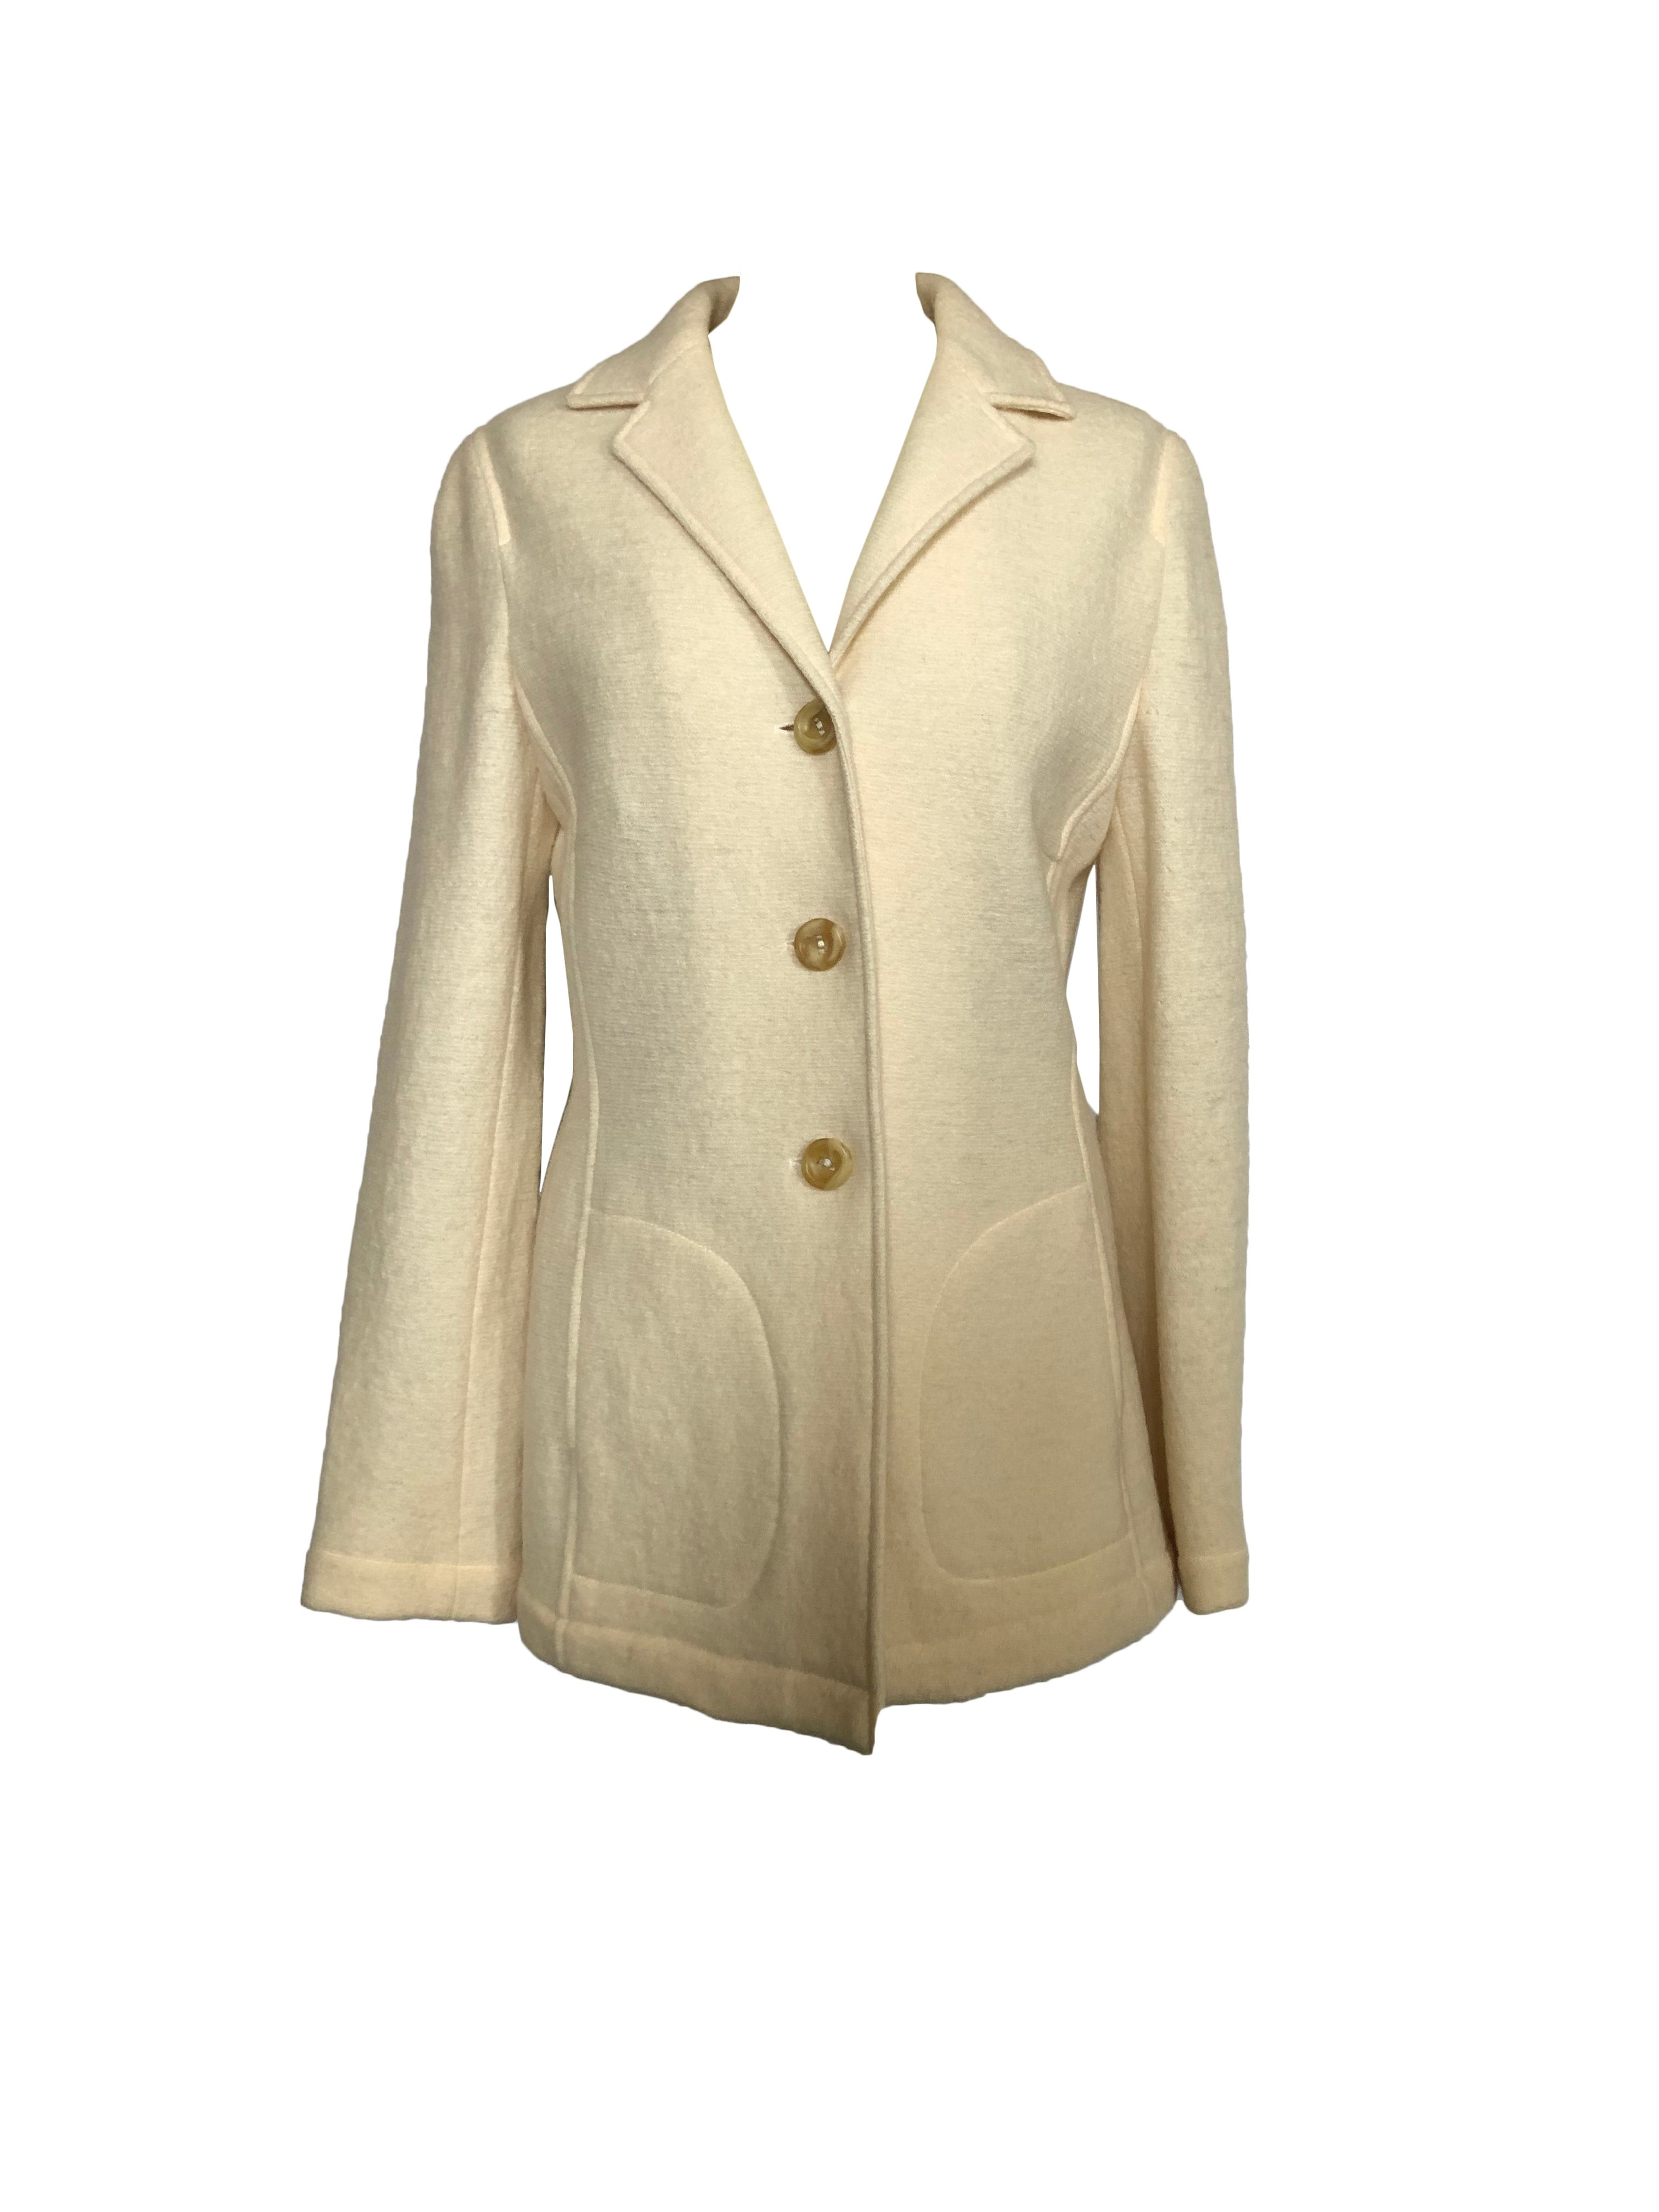 Georges Rech 100% Wool Coat in White Size 40 (EU)